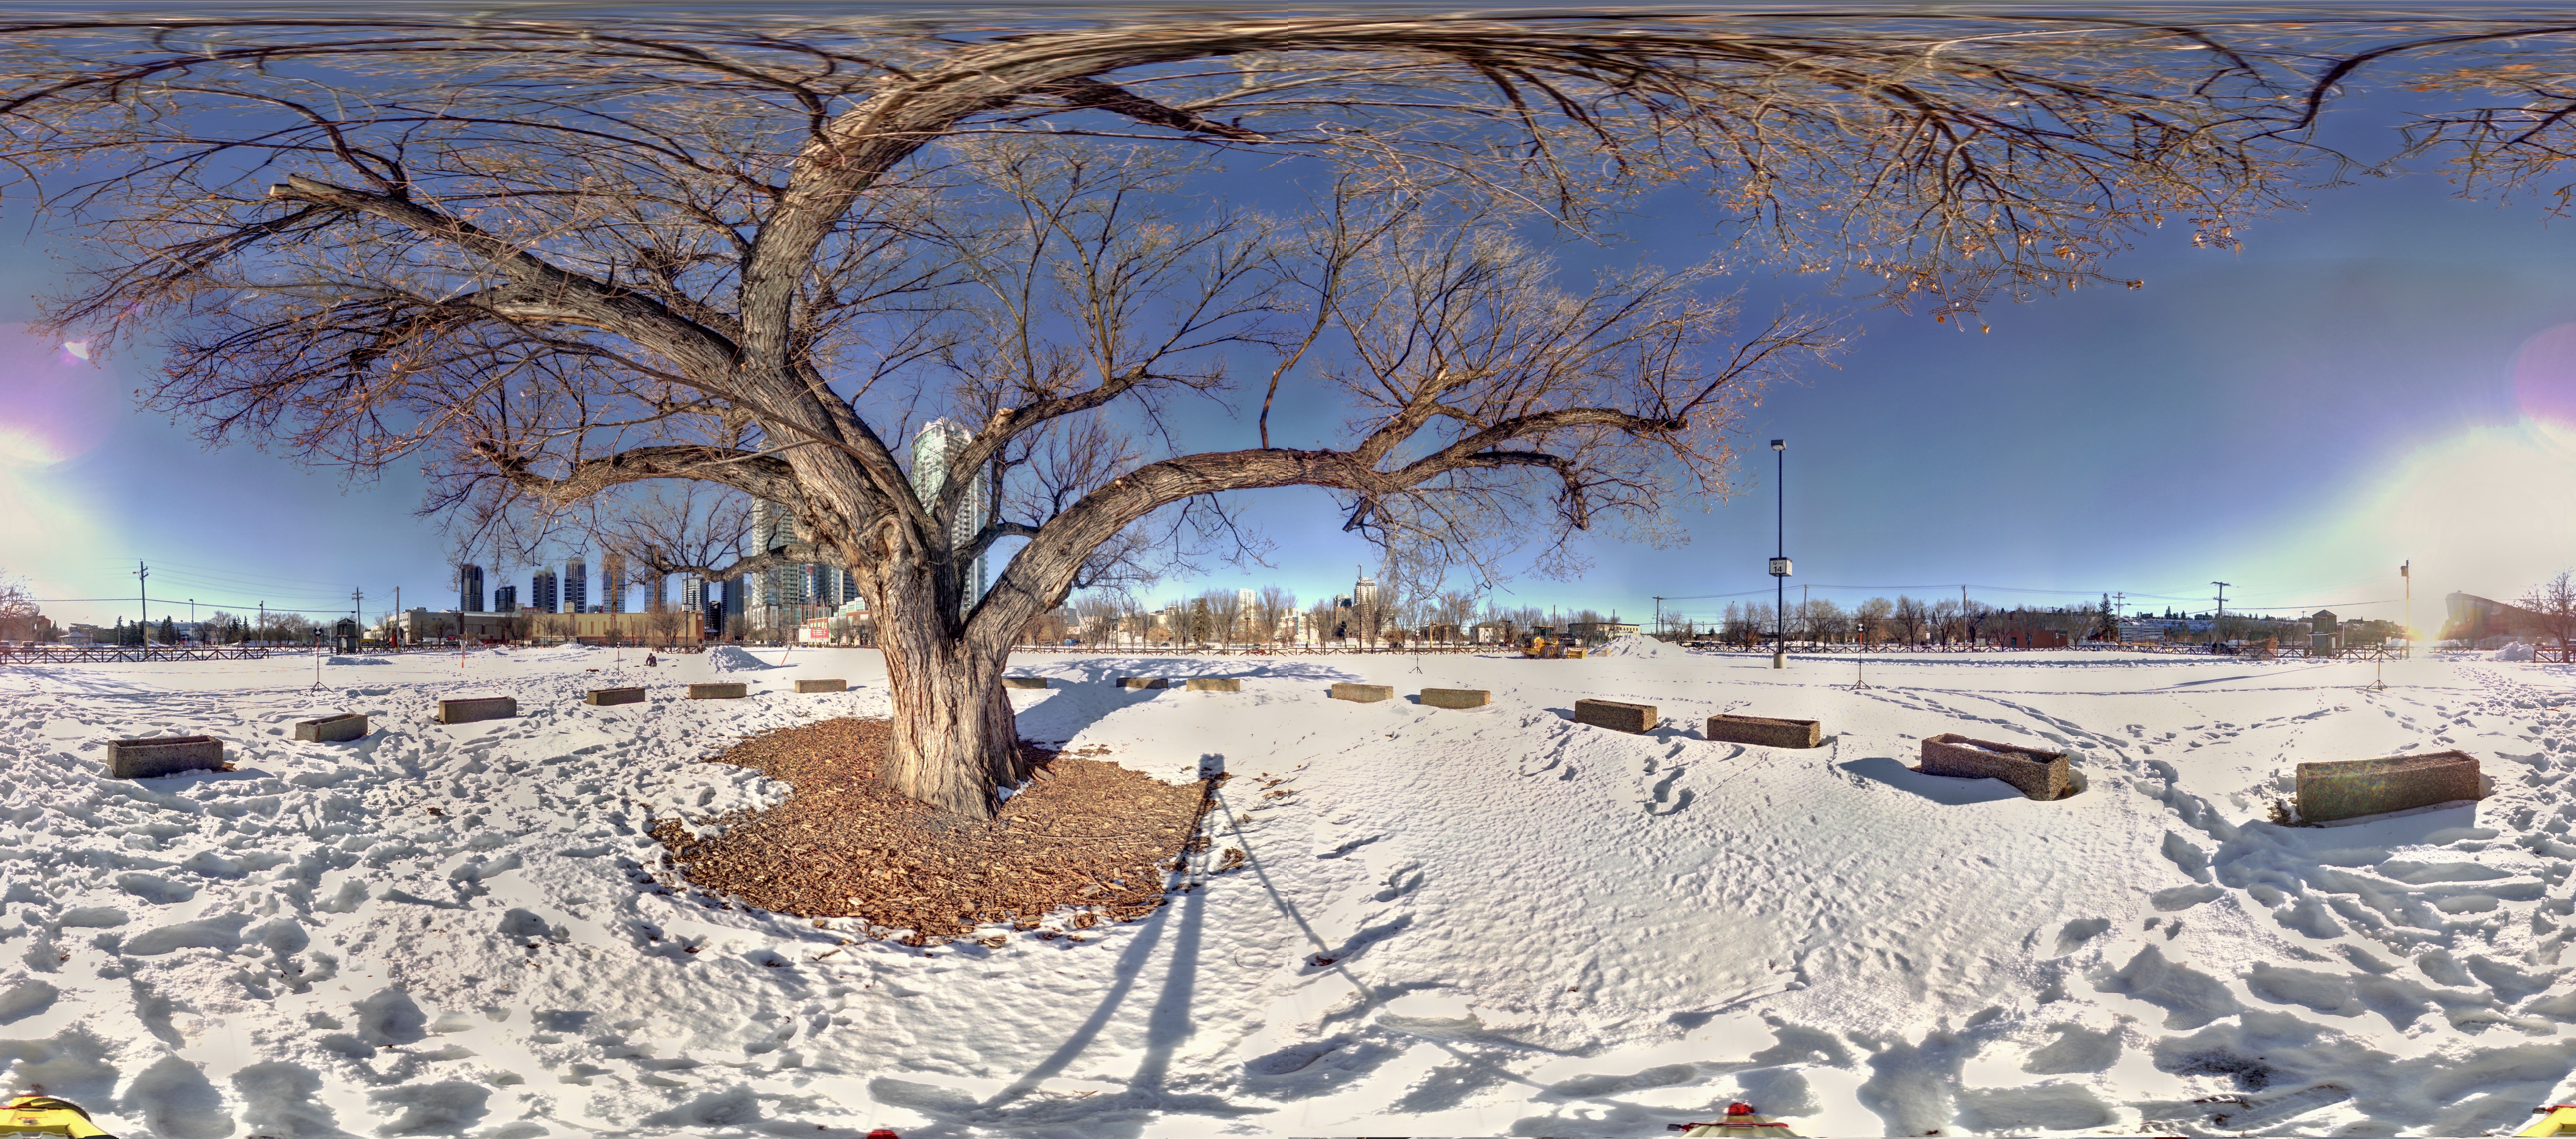 Panoramic view of the Stampede Elm and downtown Calgary from Z+F 5010X laser scanner, scanning location 9